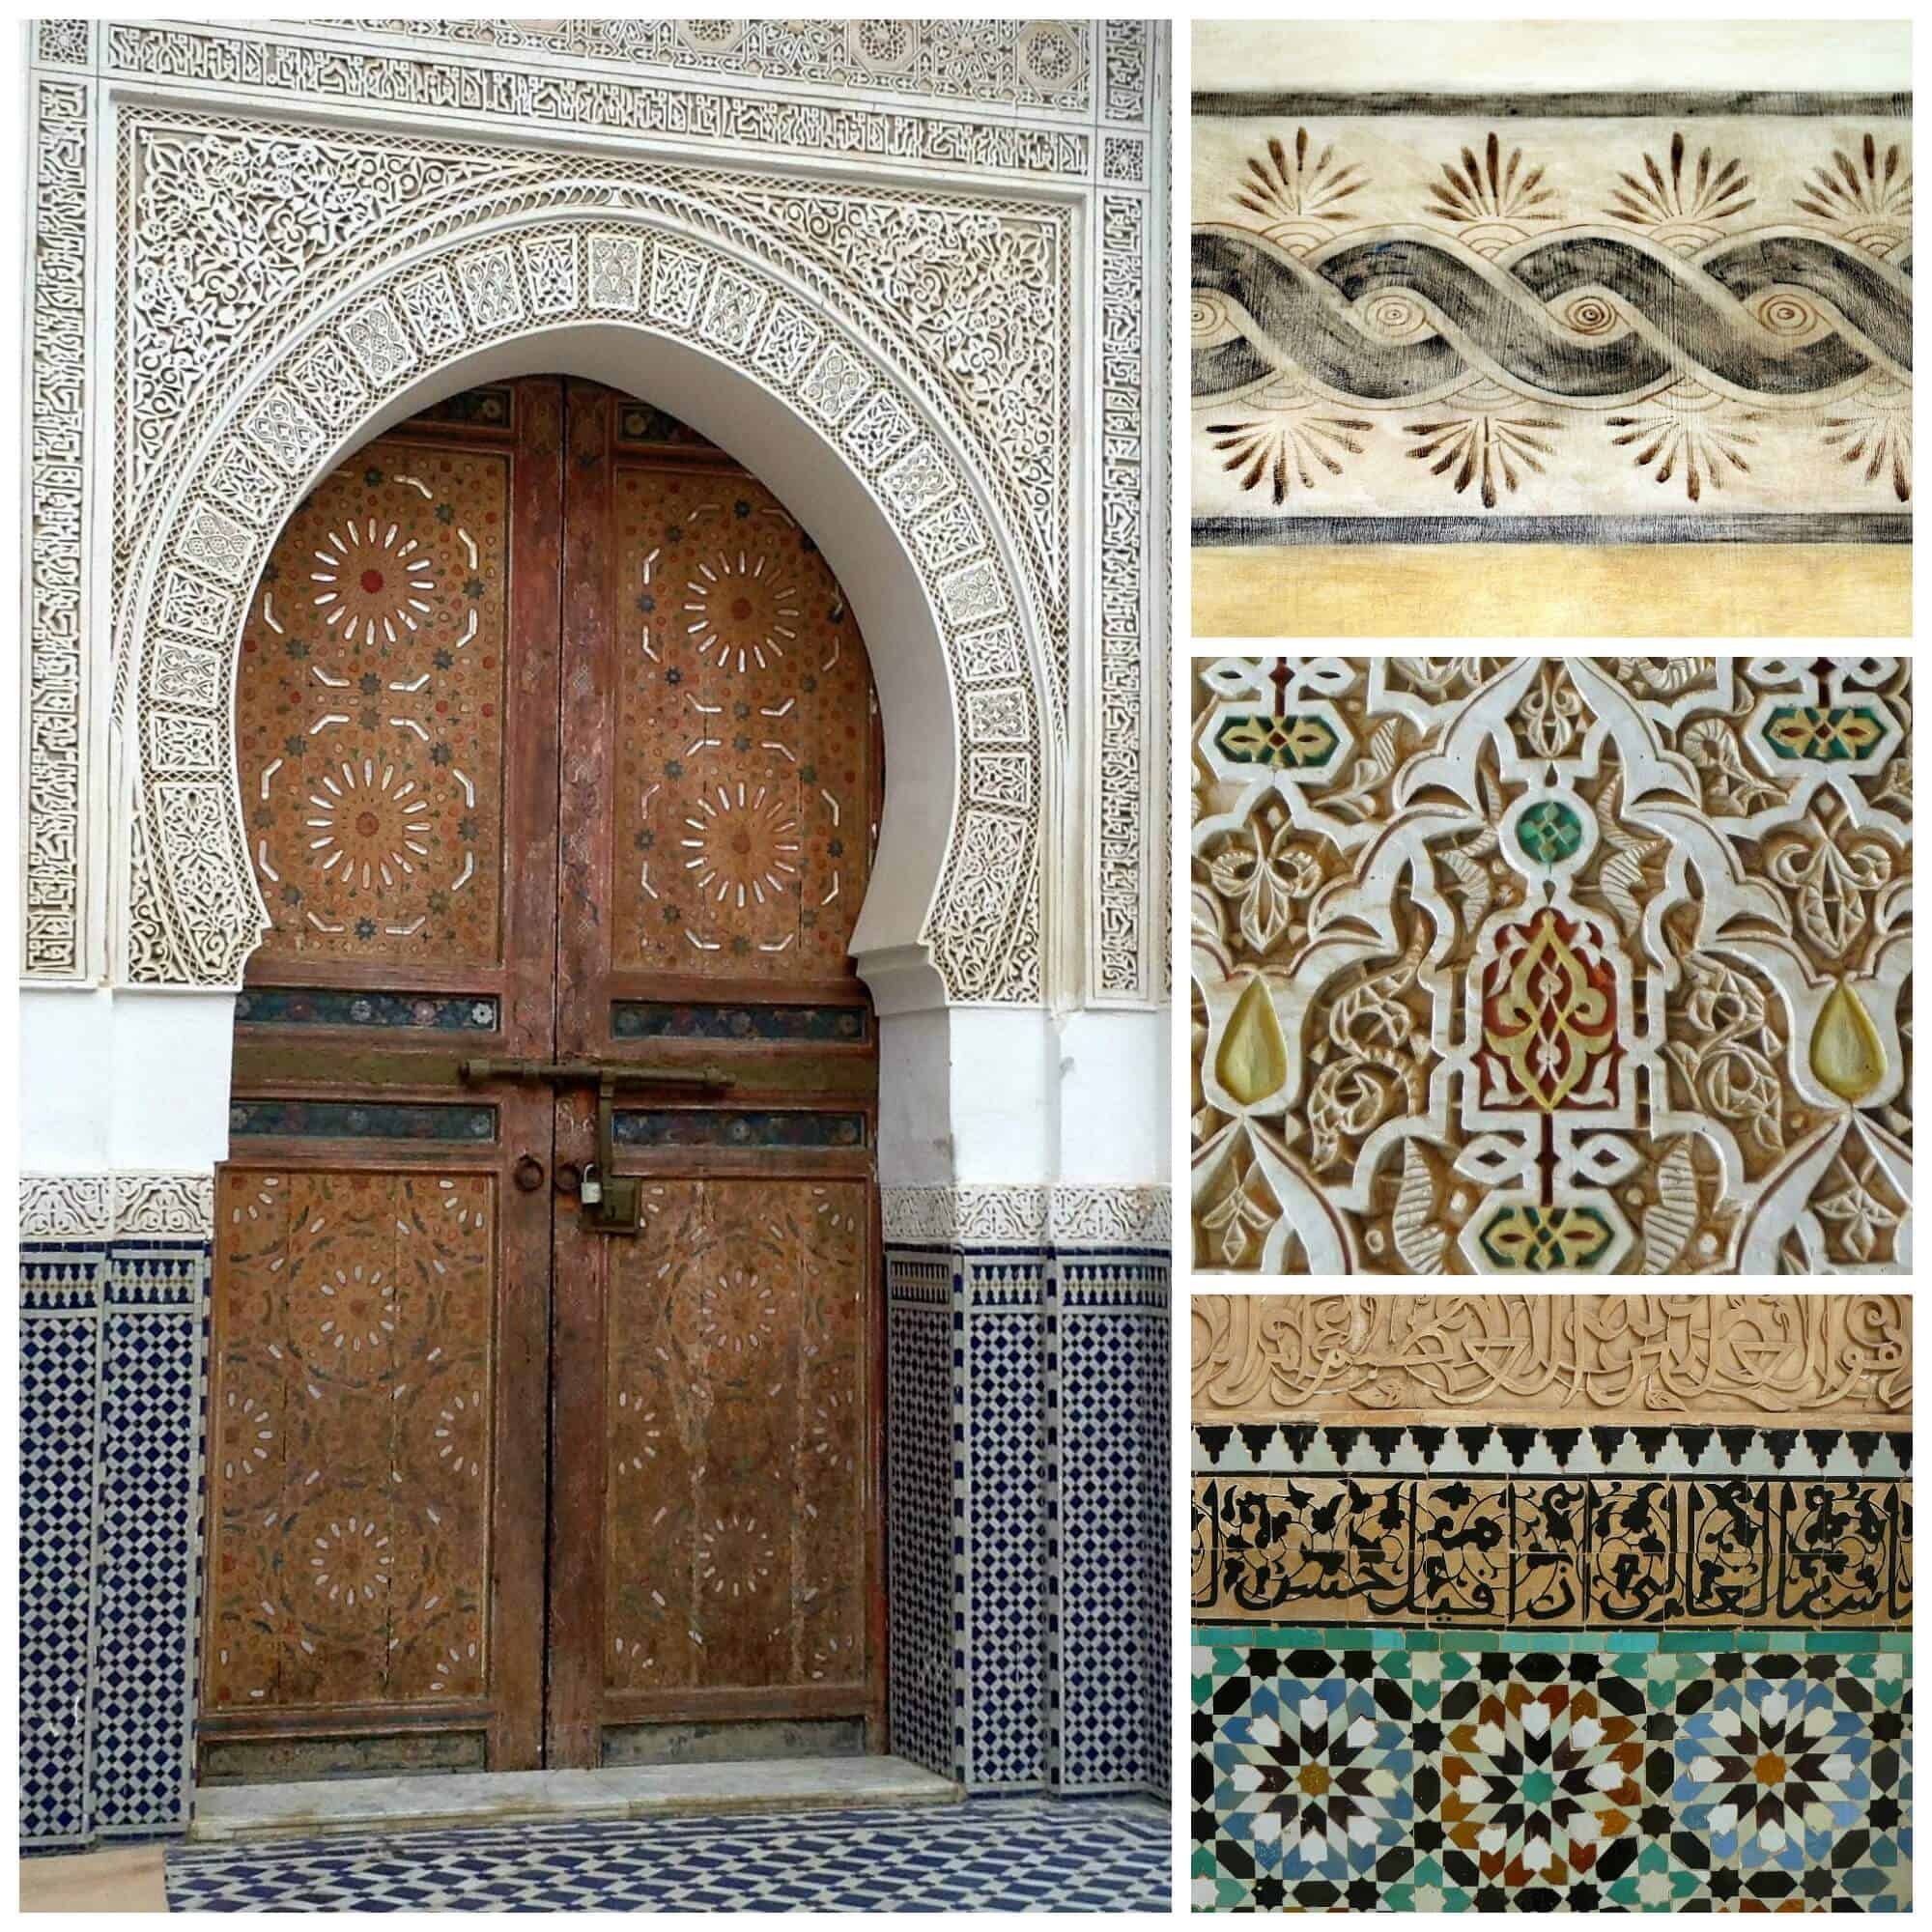 Morocco Collage 1